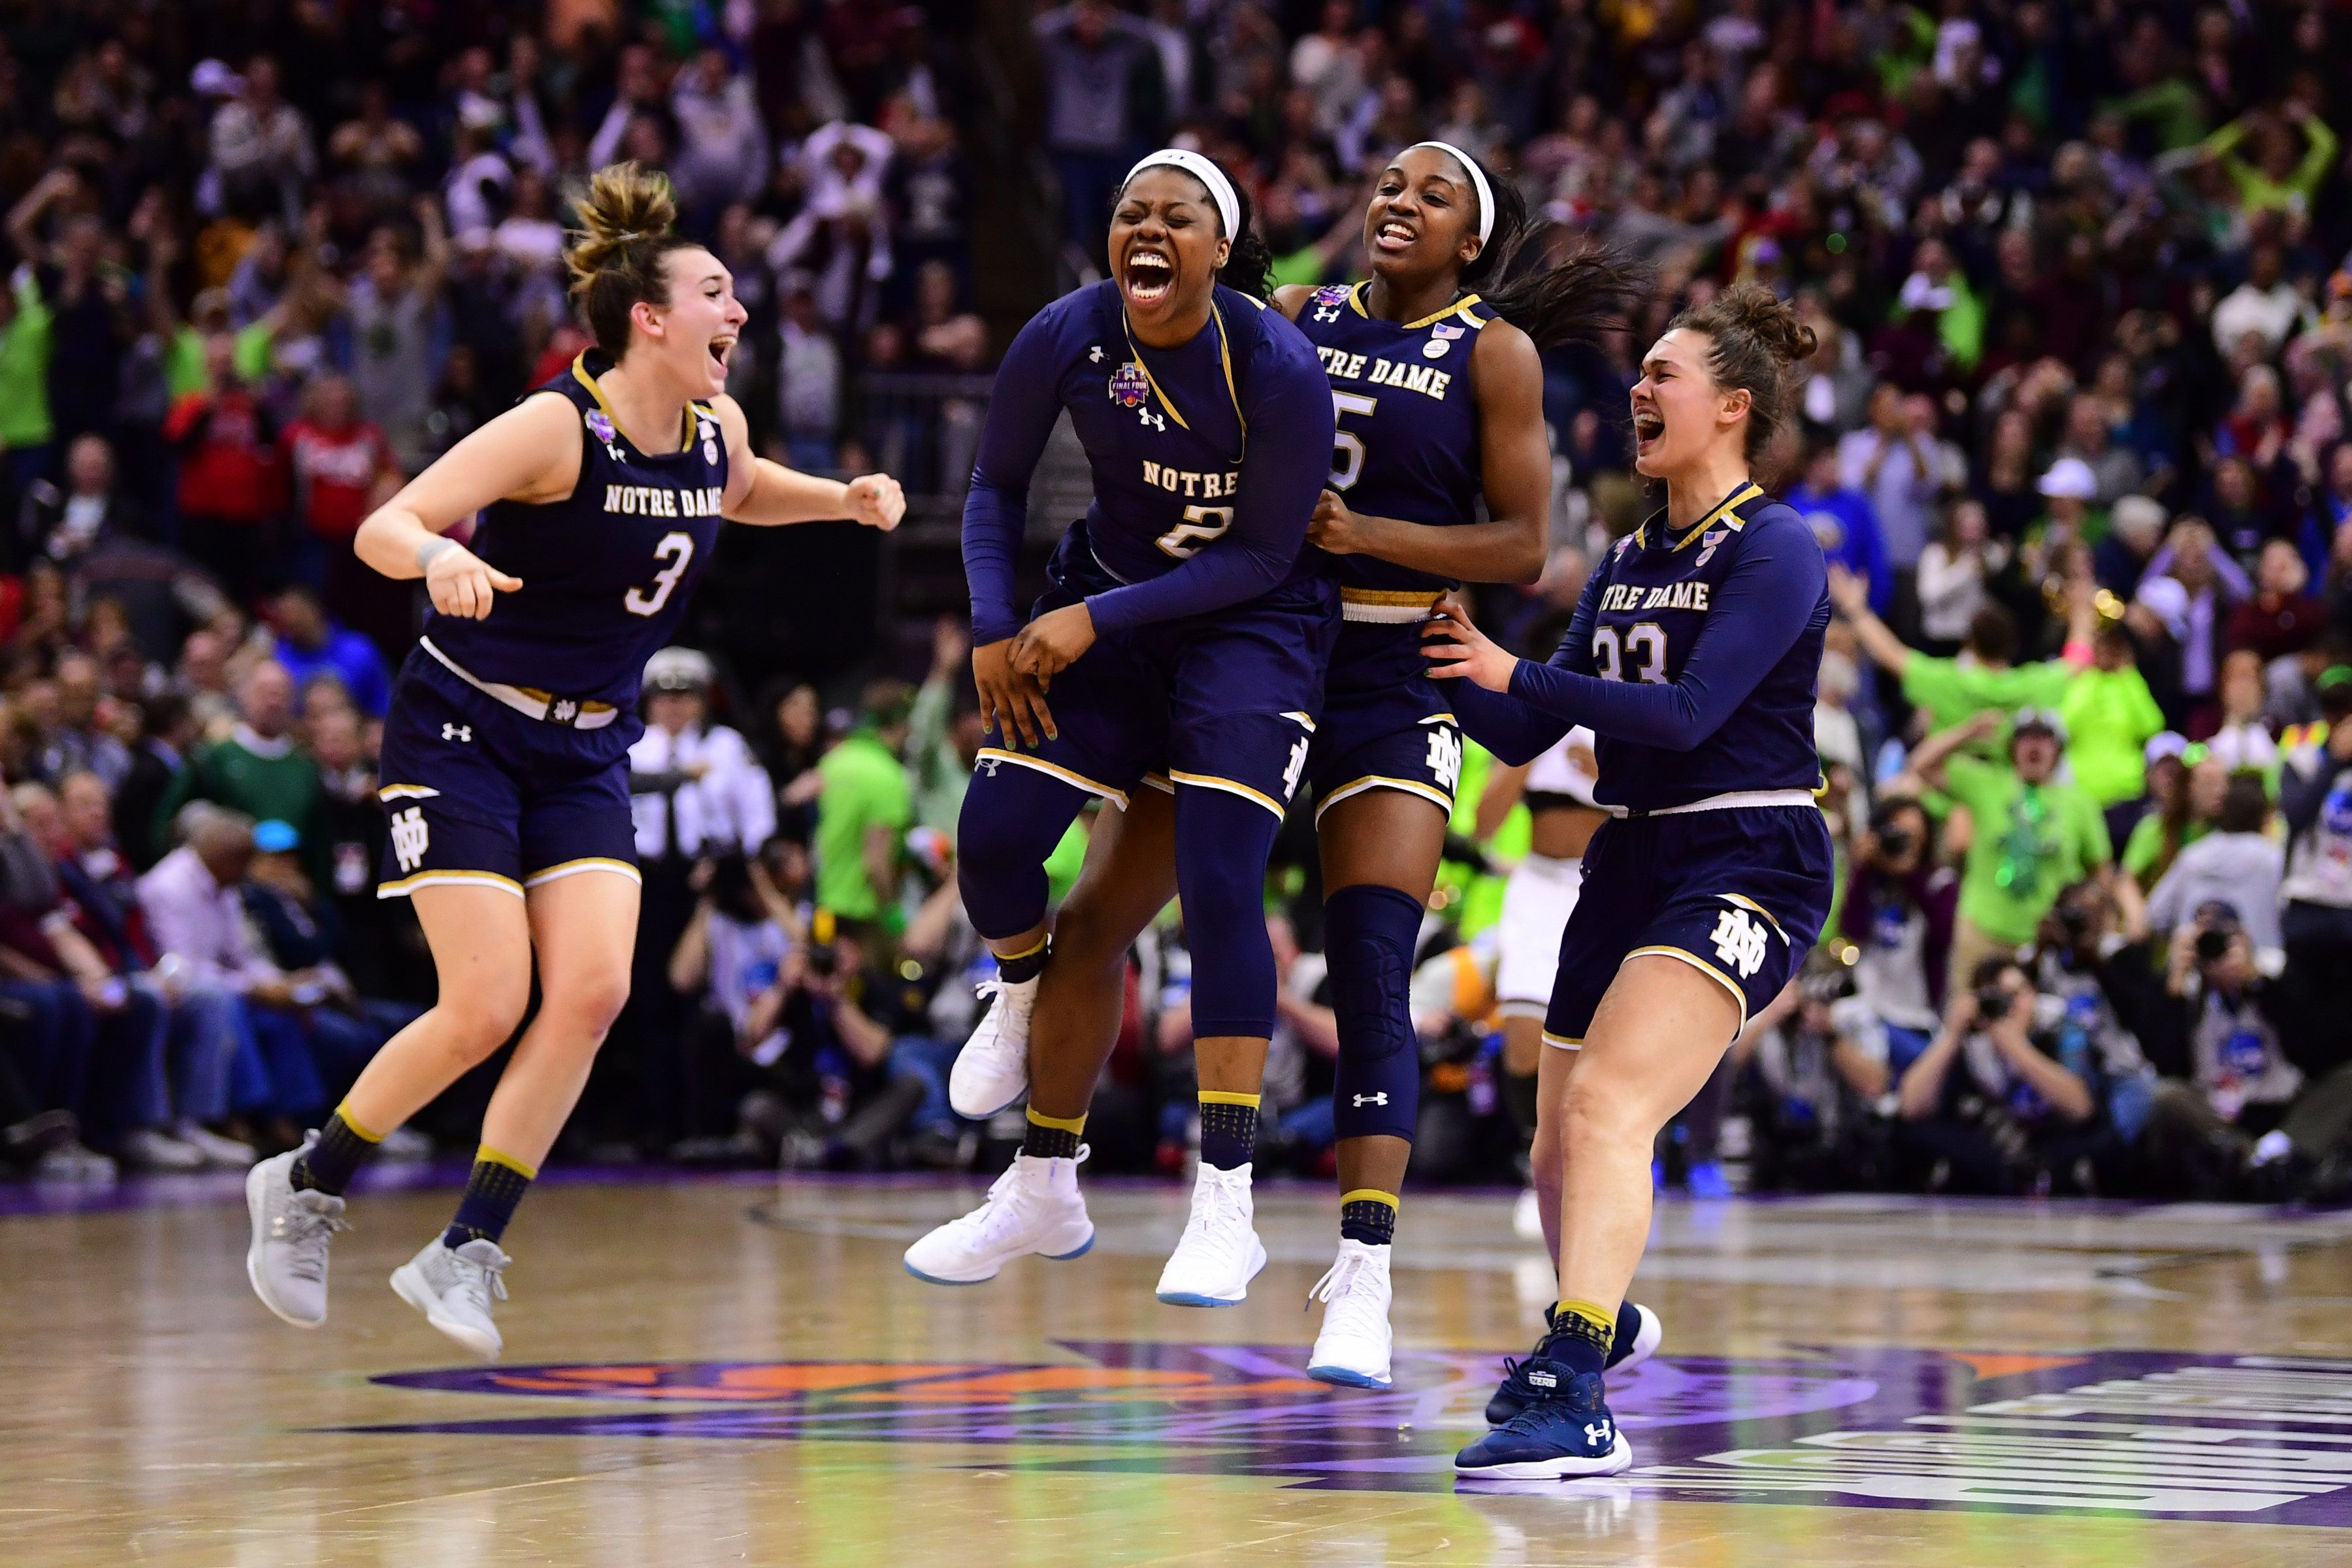 COLUMBUS, OH - APRIL 1: Notre Dame Fighting Irish players celebrate winning the championship against the Mississippi State Bulldogs at Nationwide Arena April 1, 2018 in Columbus, Ohio. (Photo by Ben Solomon/NCAA Photos via Getty Images)